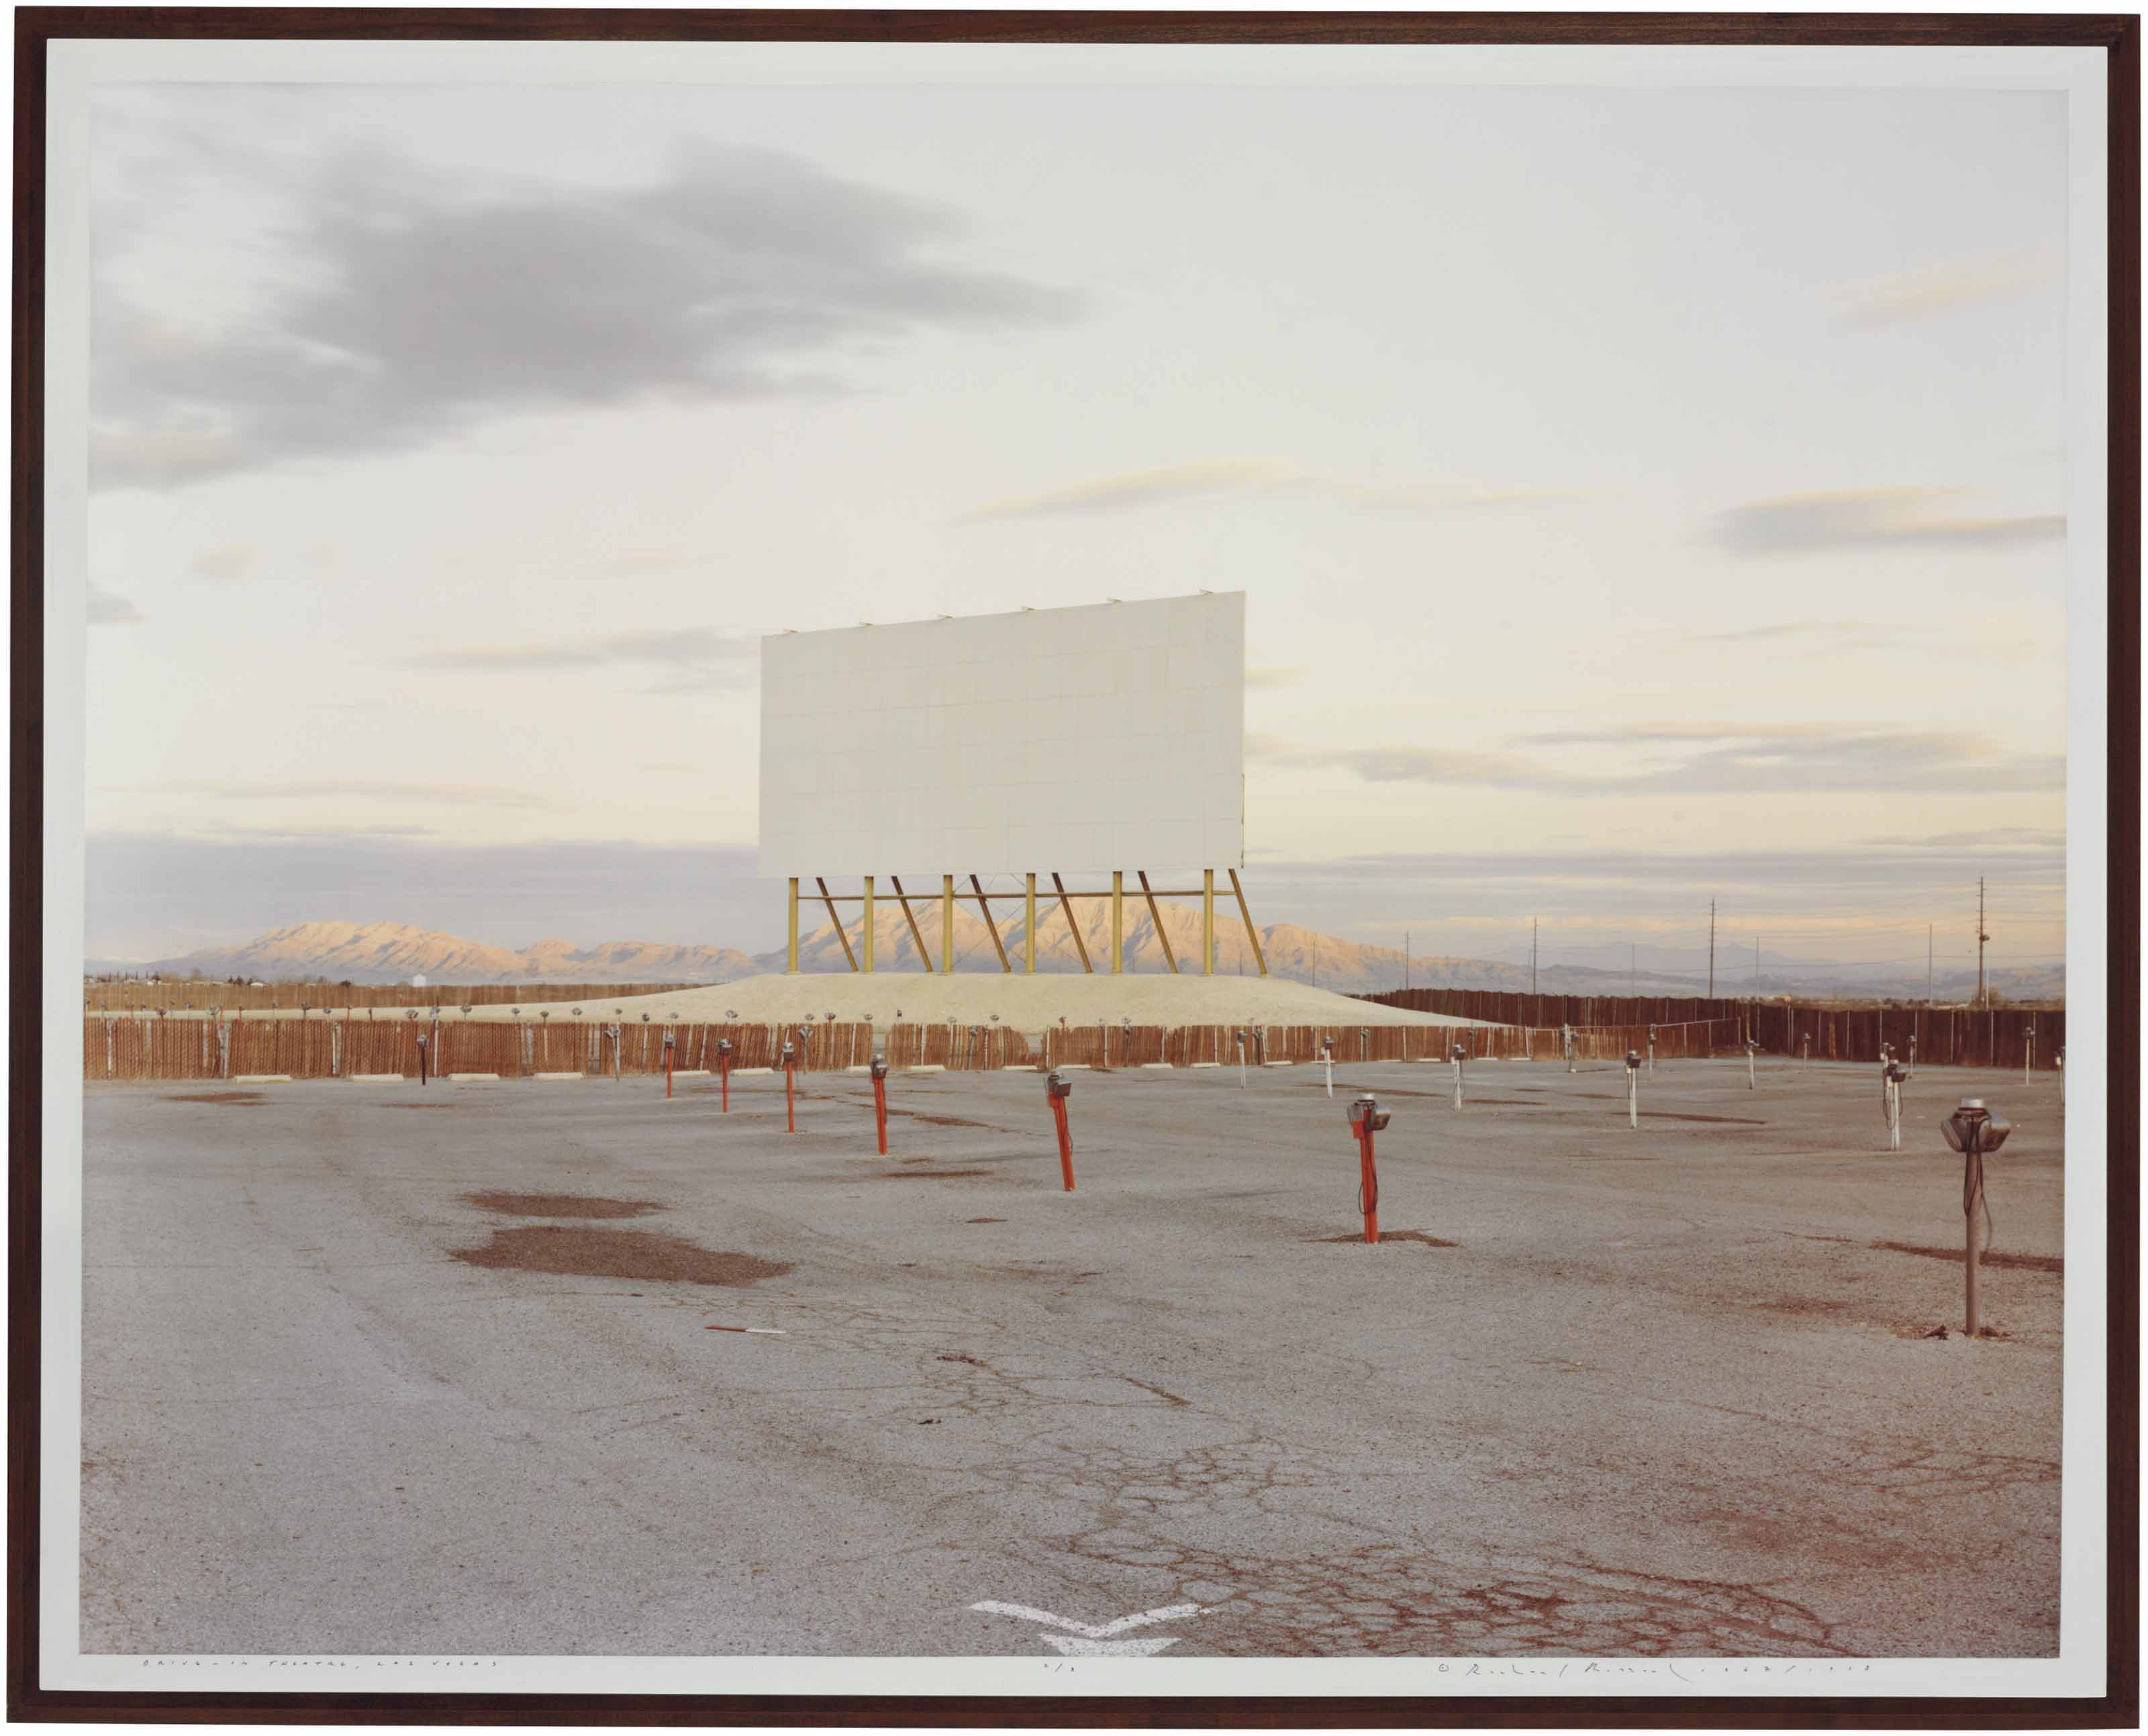 Drive-in Theatre, Las Vegas from 'American History Lessons', 1987